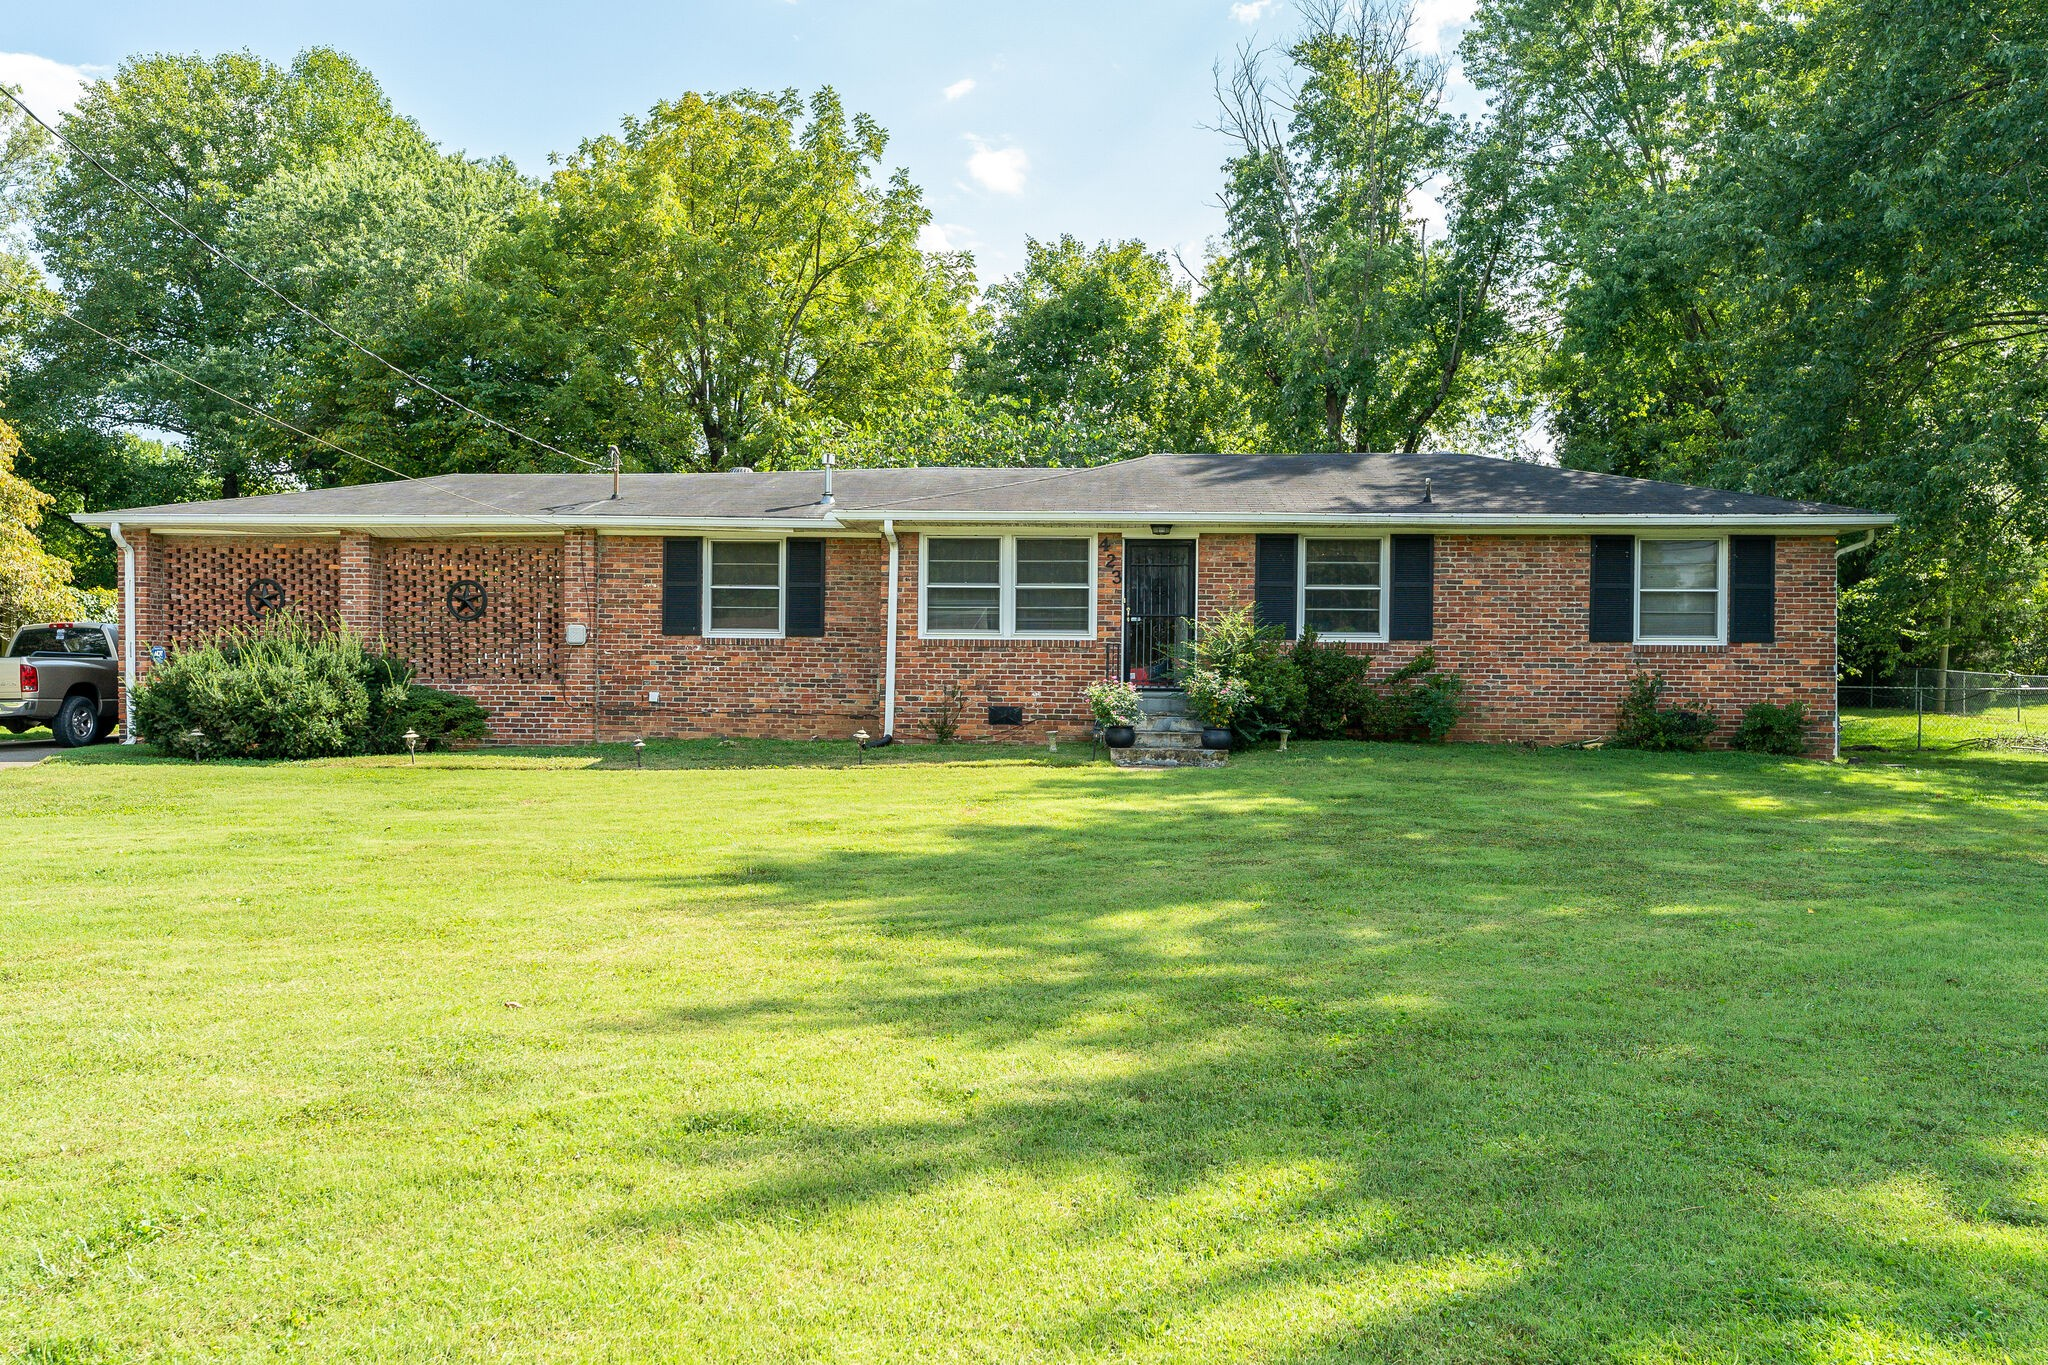 Lovely home on 1.23 level acres. Excellent location B/T I-24 and I-65 Large workshop with a car port and electric. Large fenced back-yard with a 2nd fenced area for pets. This could also be and investor/developers dream.  Showings begin Friday 9/17/21 Open House 9/18 and 9/19 2-4 pm